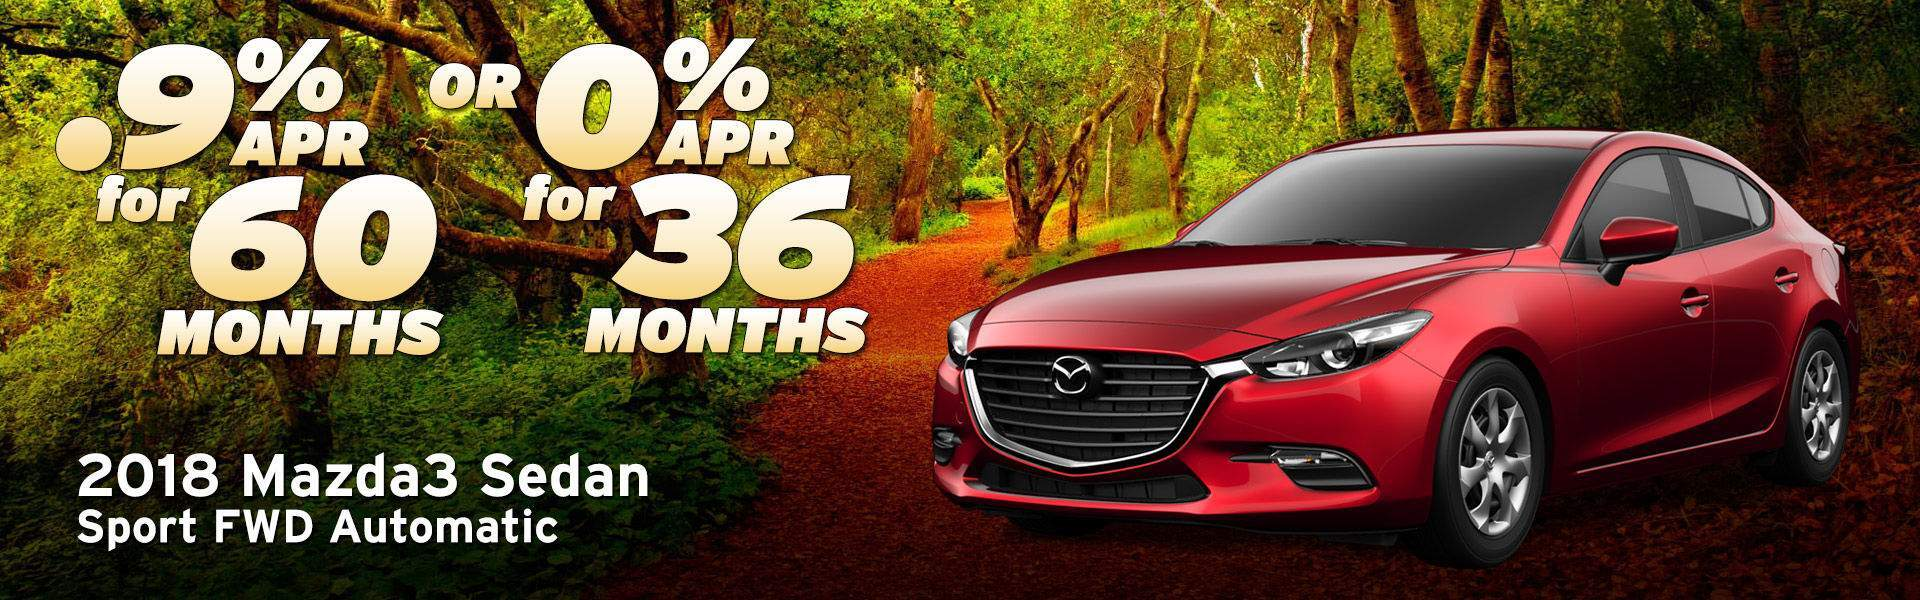 2018 Mazda3 Sedan at Earnhardt Mazda Las Vegas